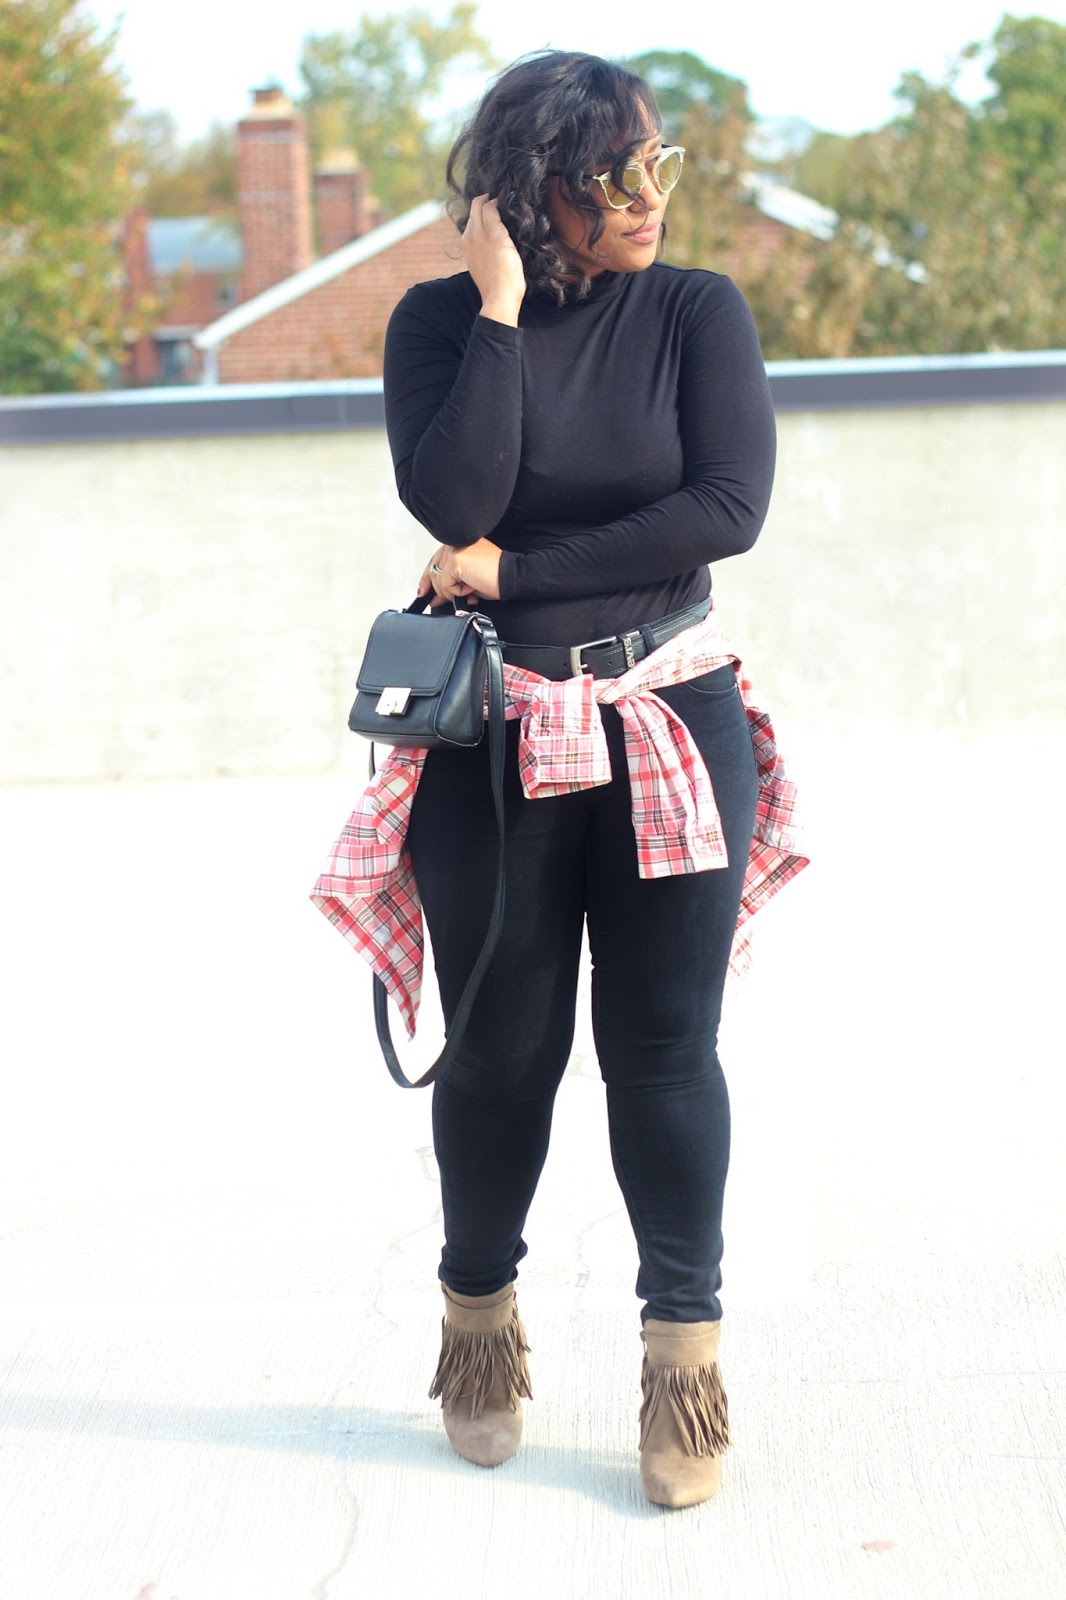 plaid, fringe, black outfits, fall outfits, sunglasses